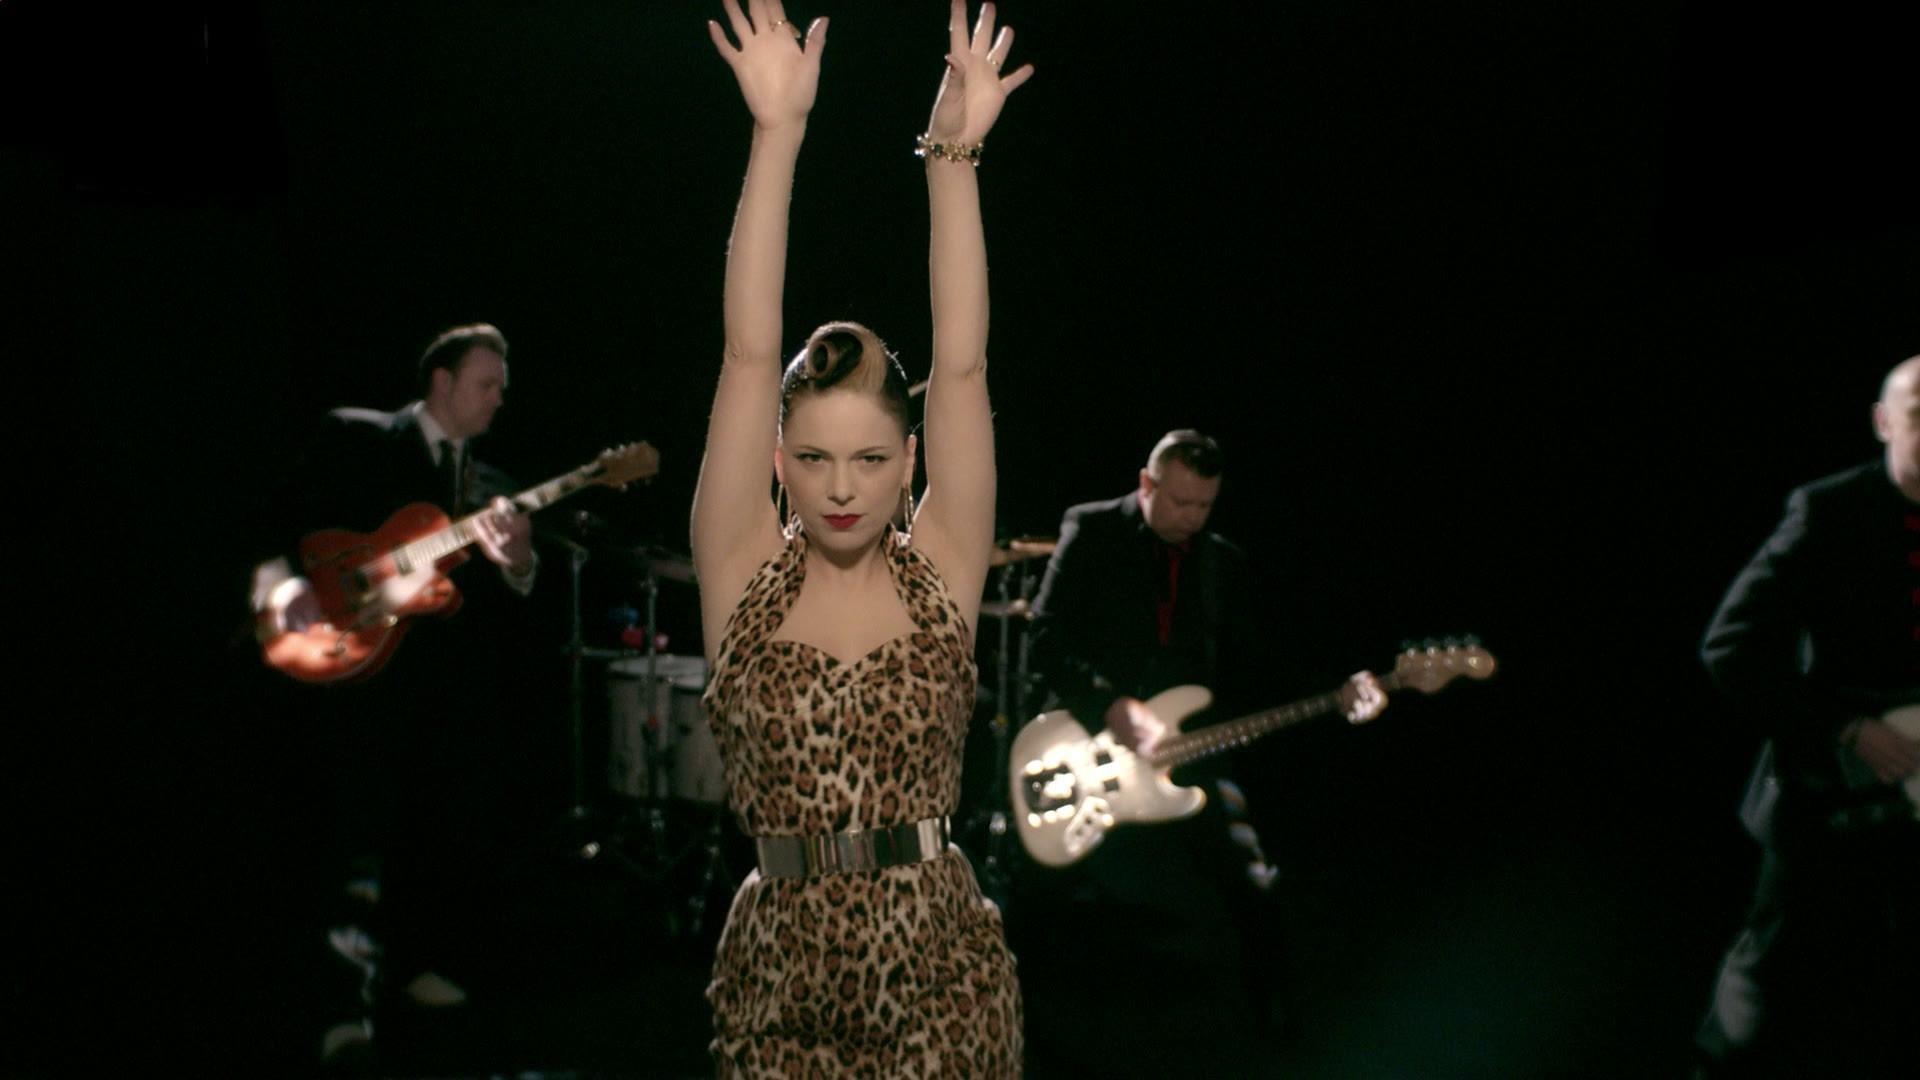 Imelda May Wild Woman